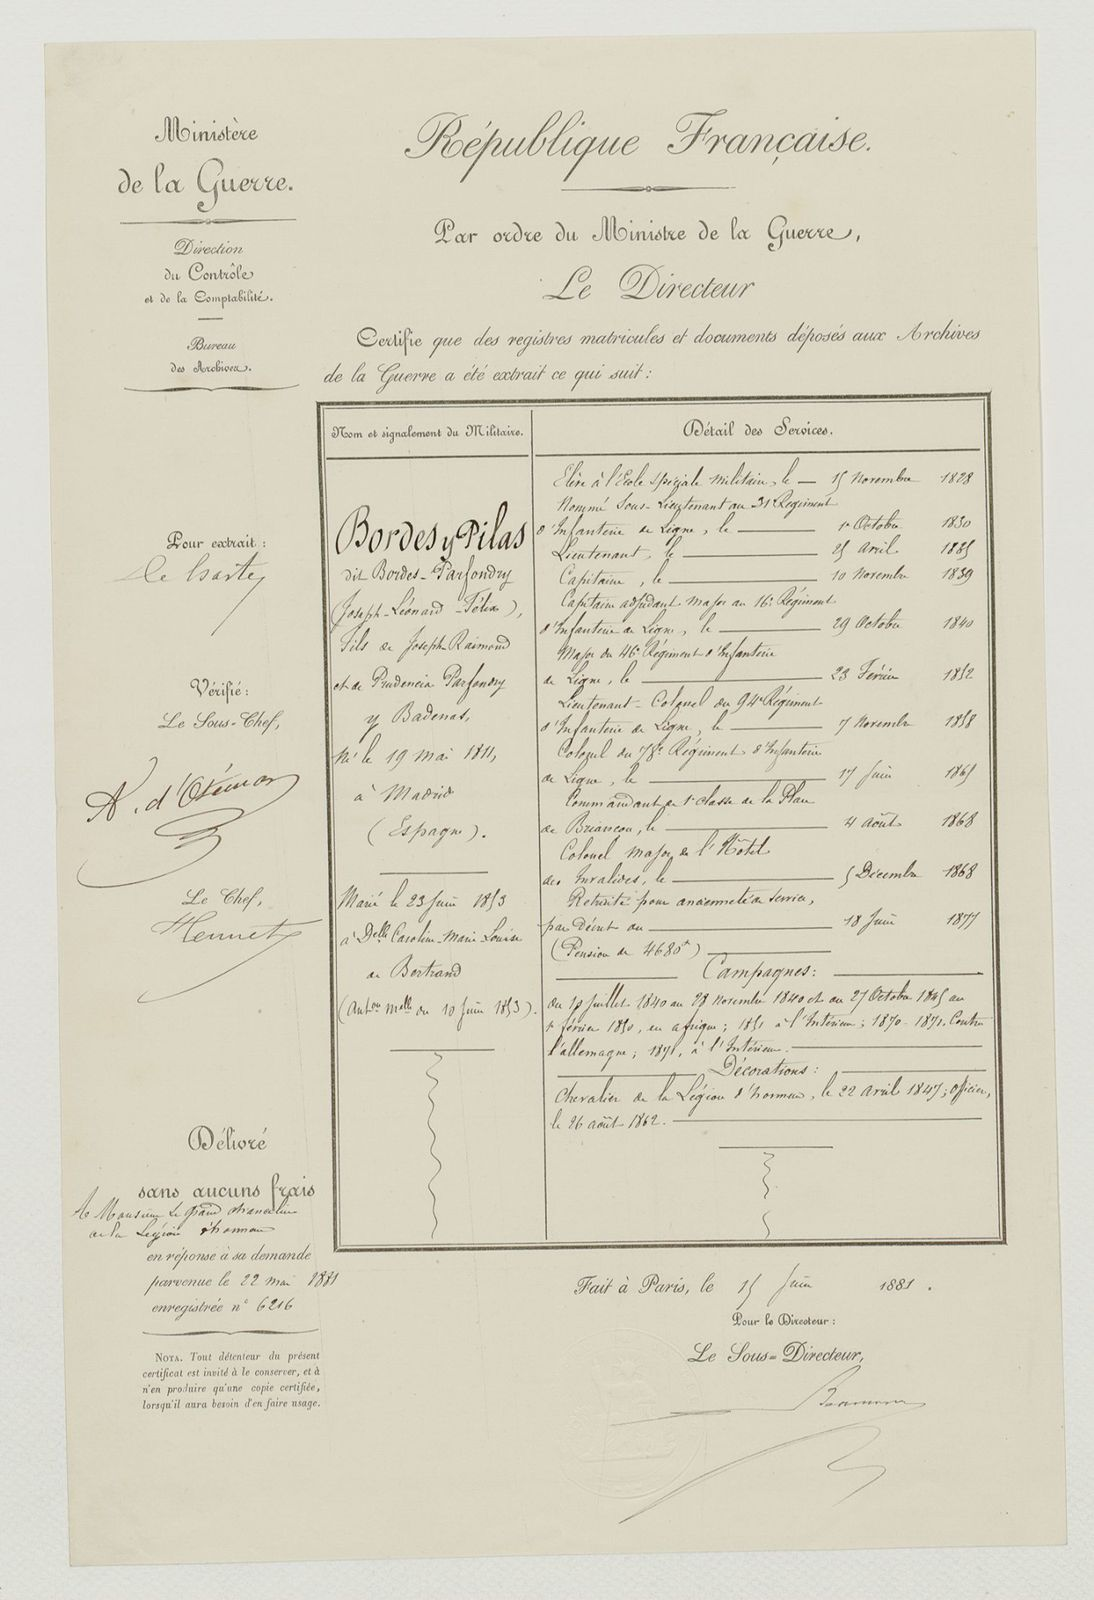 Description des services de Joseph-Léonard-Félix Bordes y Pilas, dit Bordes-Parfondry